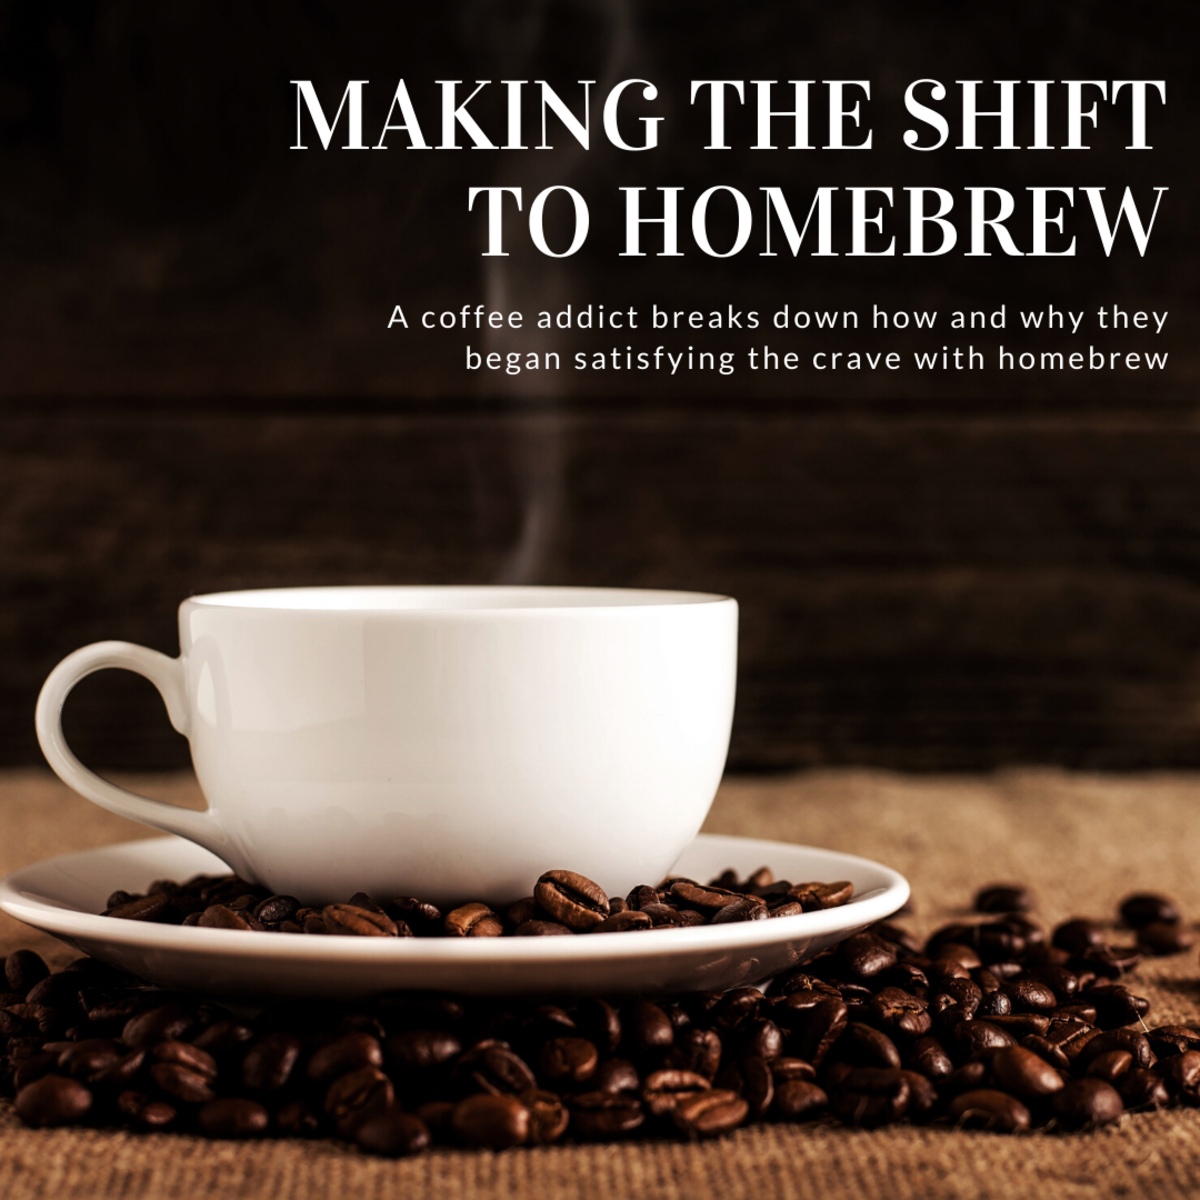 Switching to Homebrew: From One Coffee Addict to Another